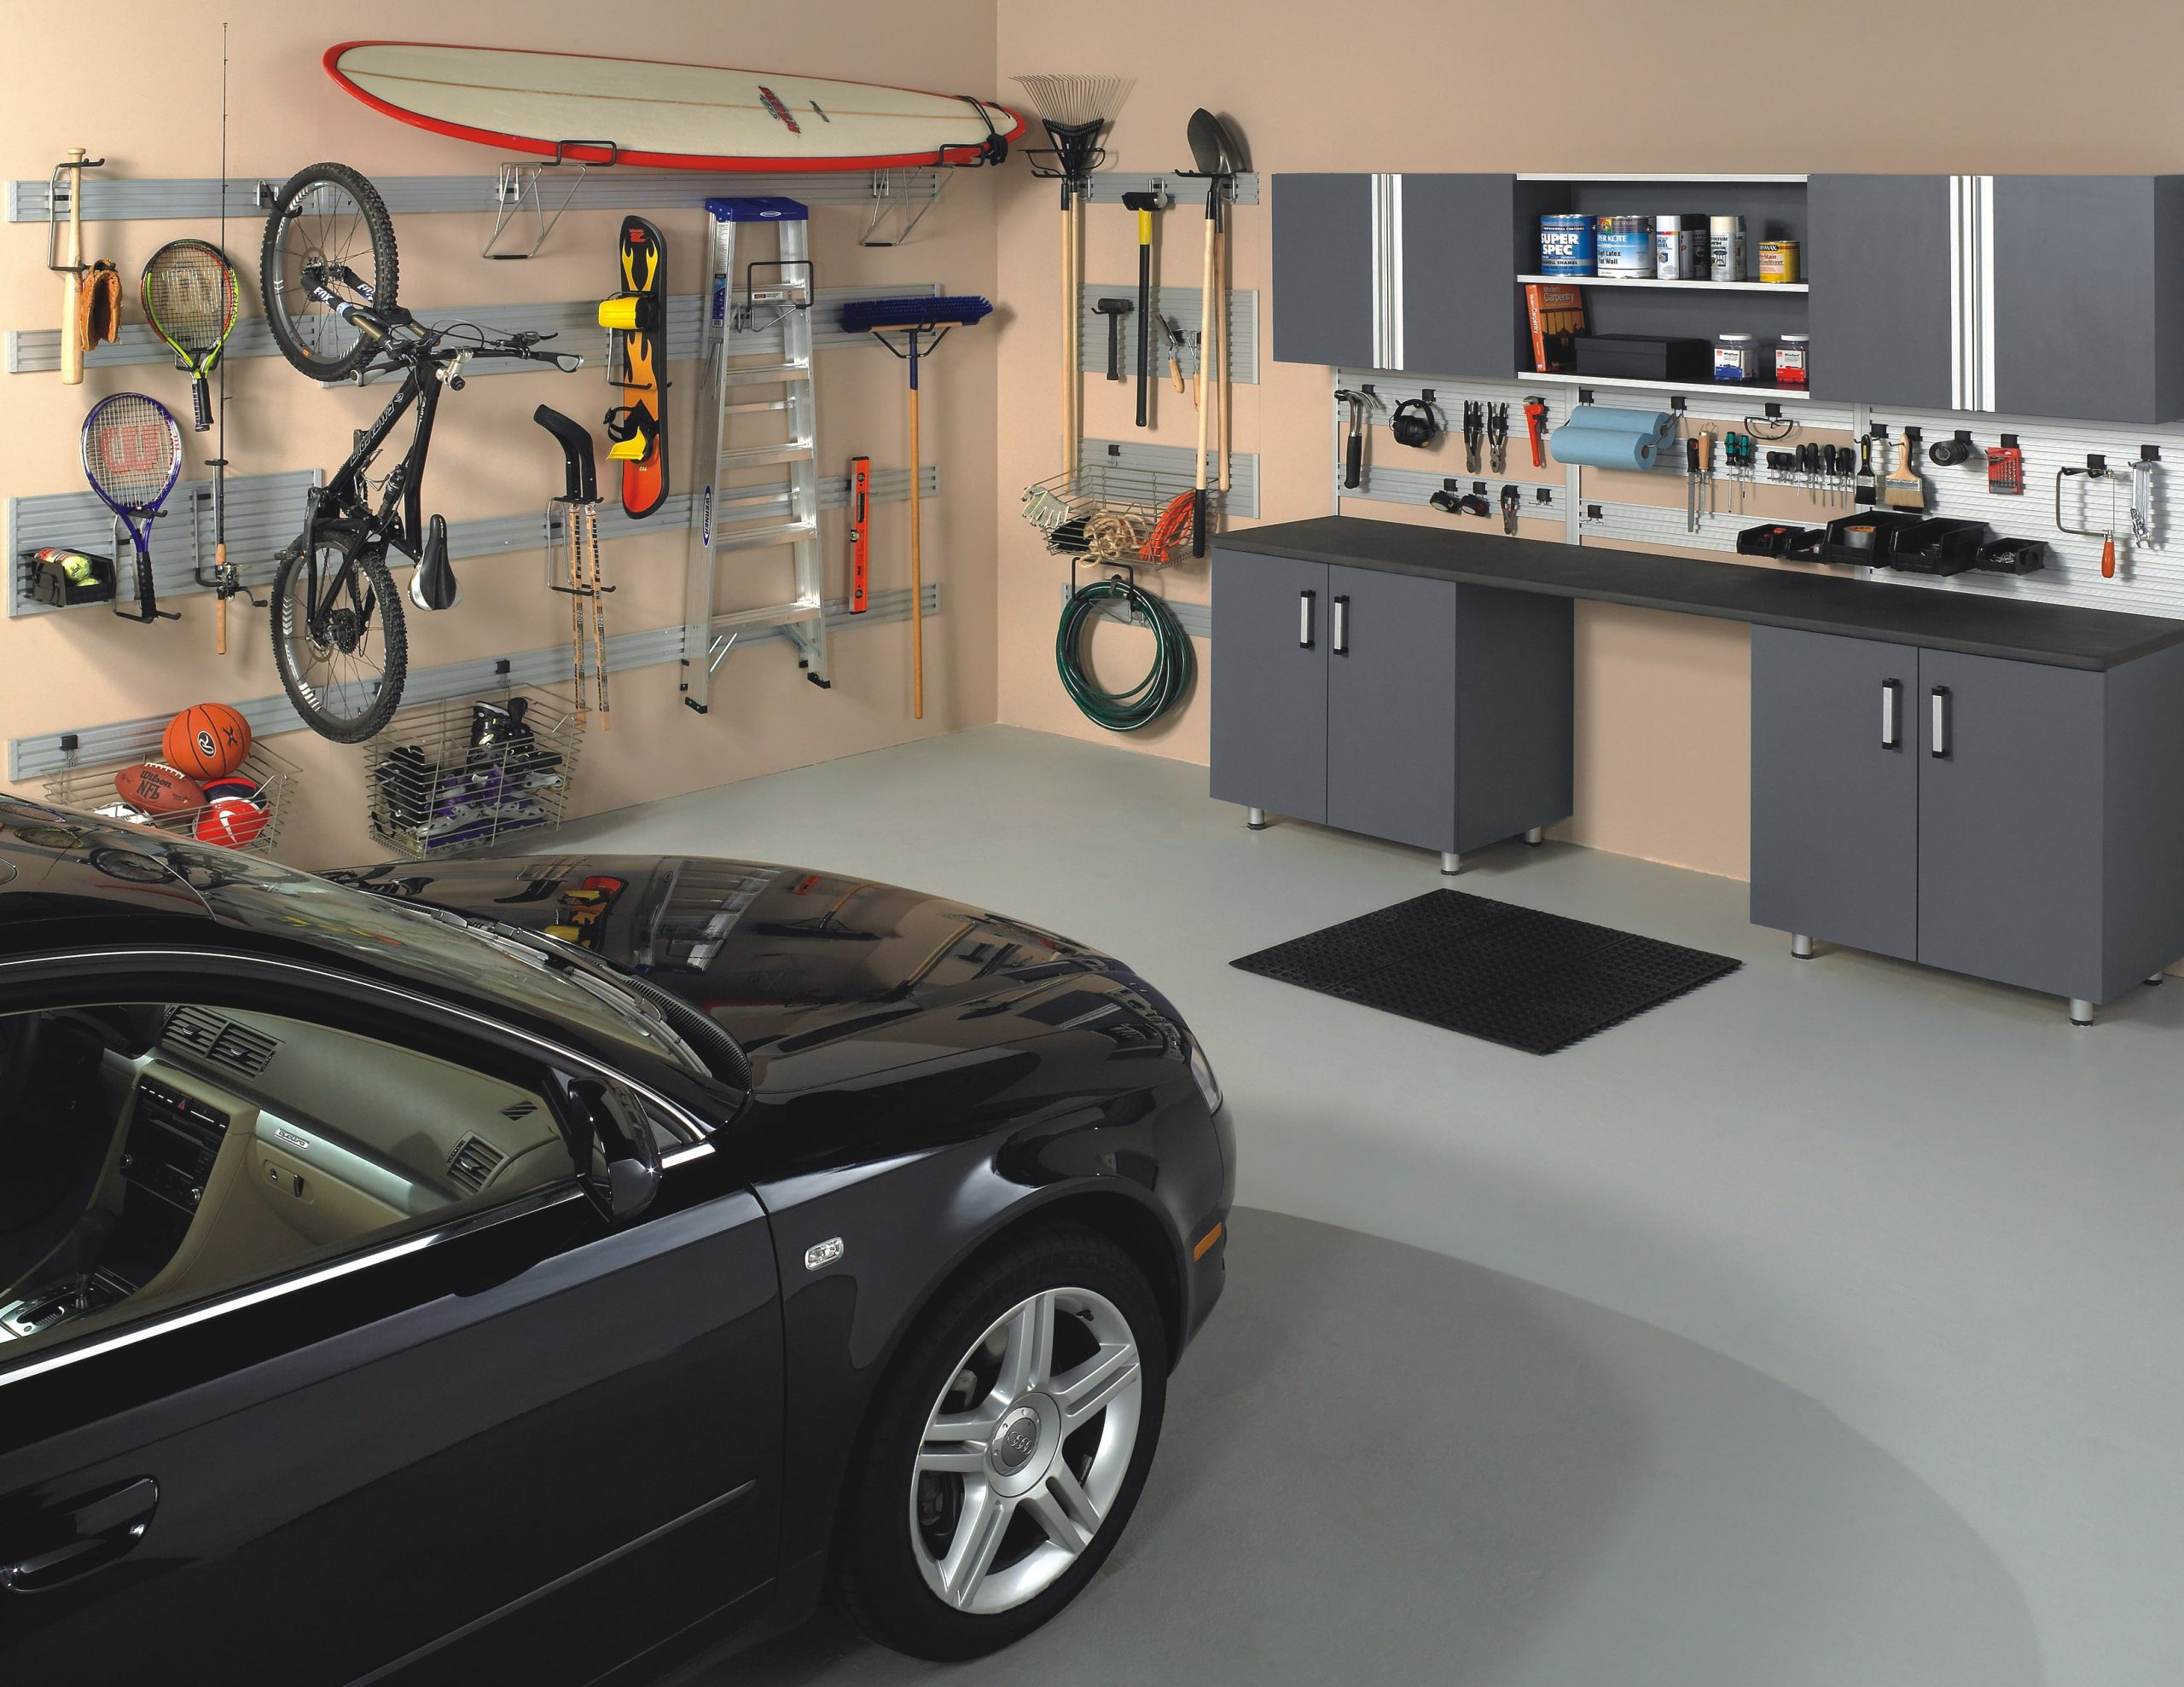 Garage storage system for bikes, sporting equipment, and tools